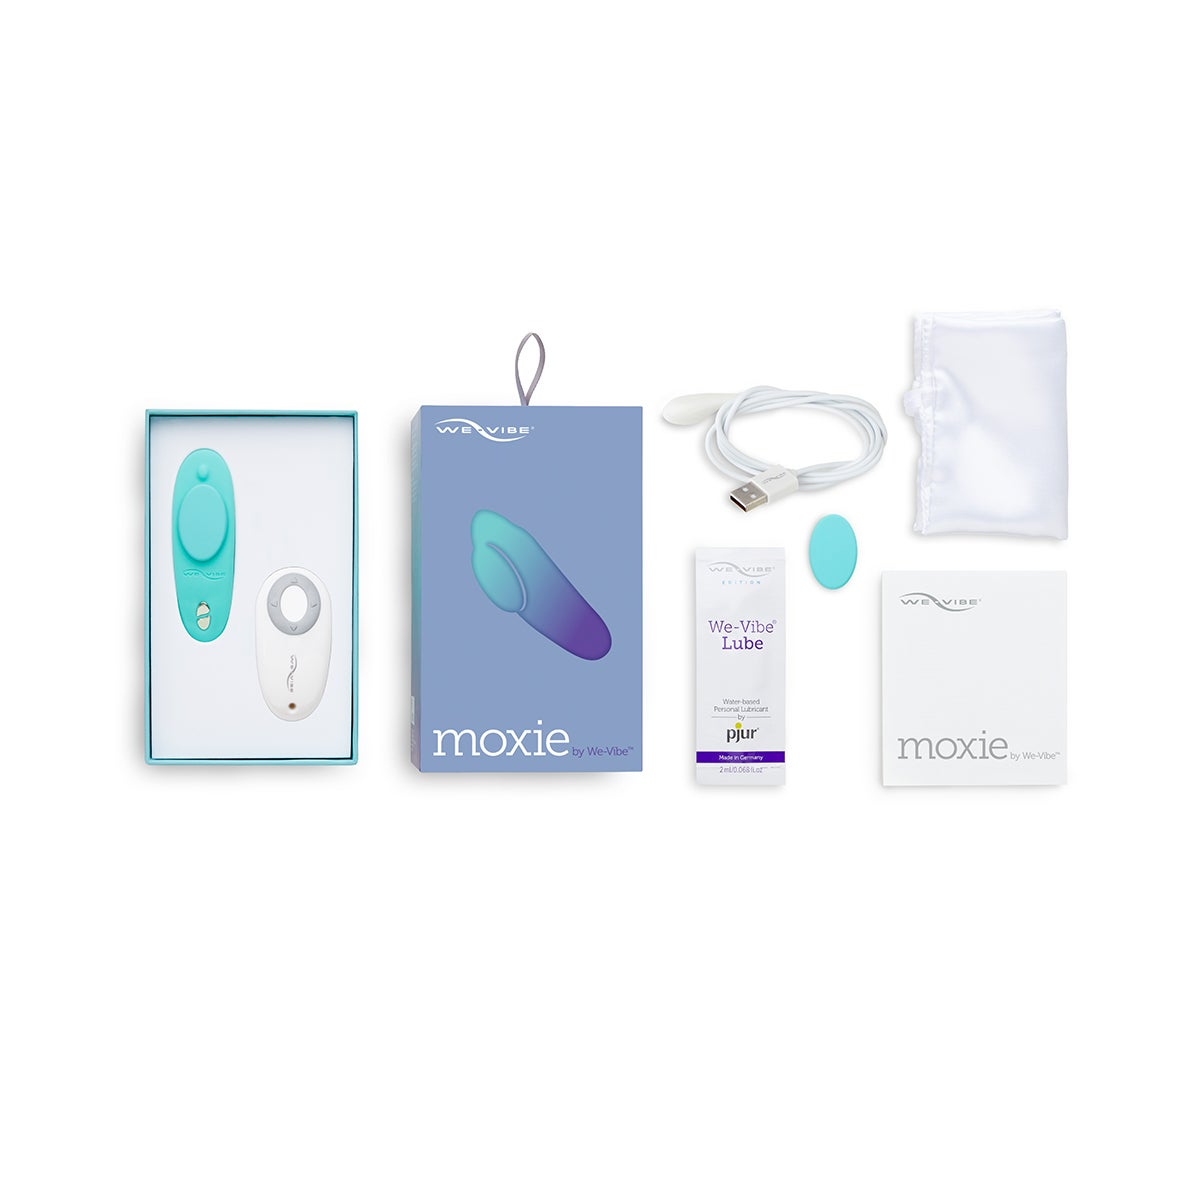 Moxie by We-Vibe™ In The Box